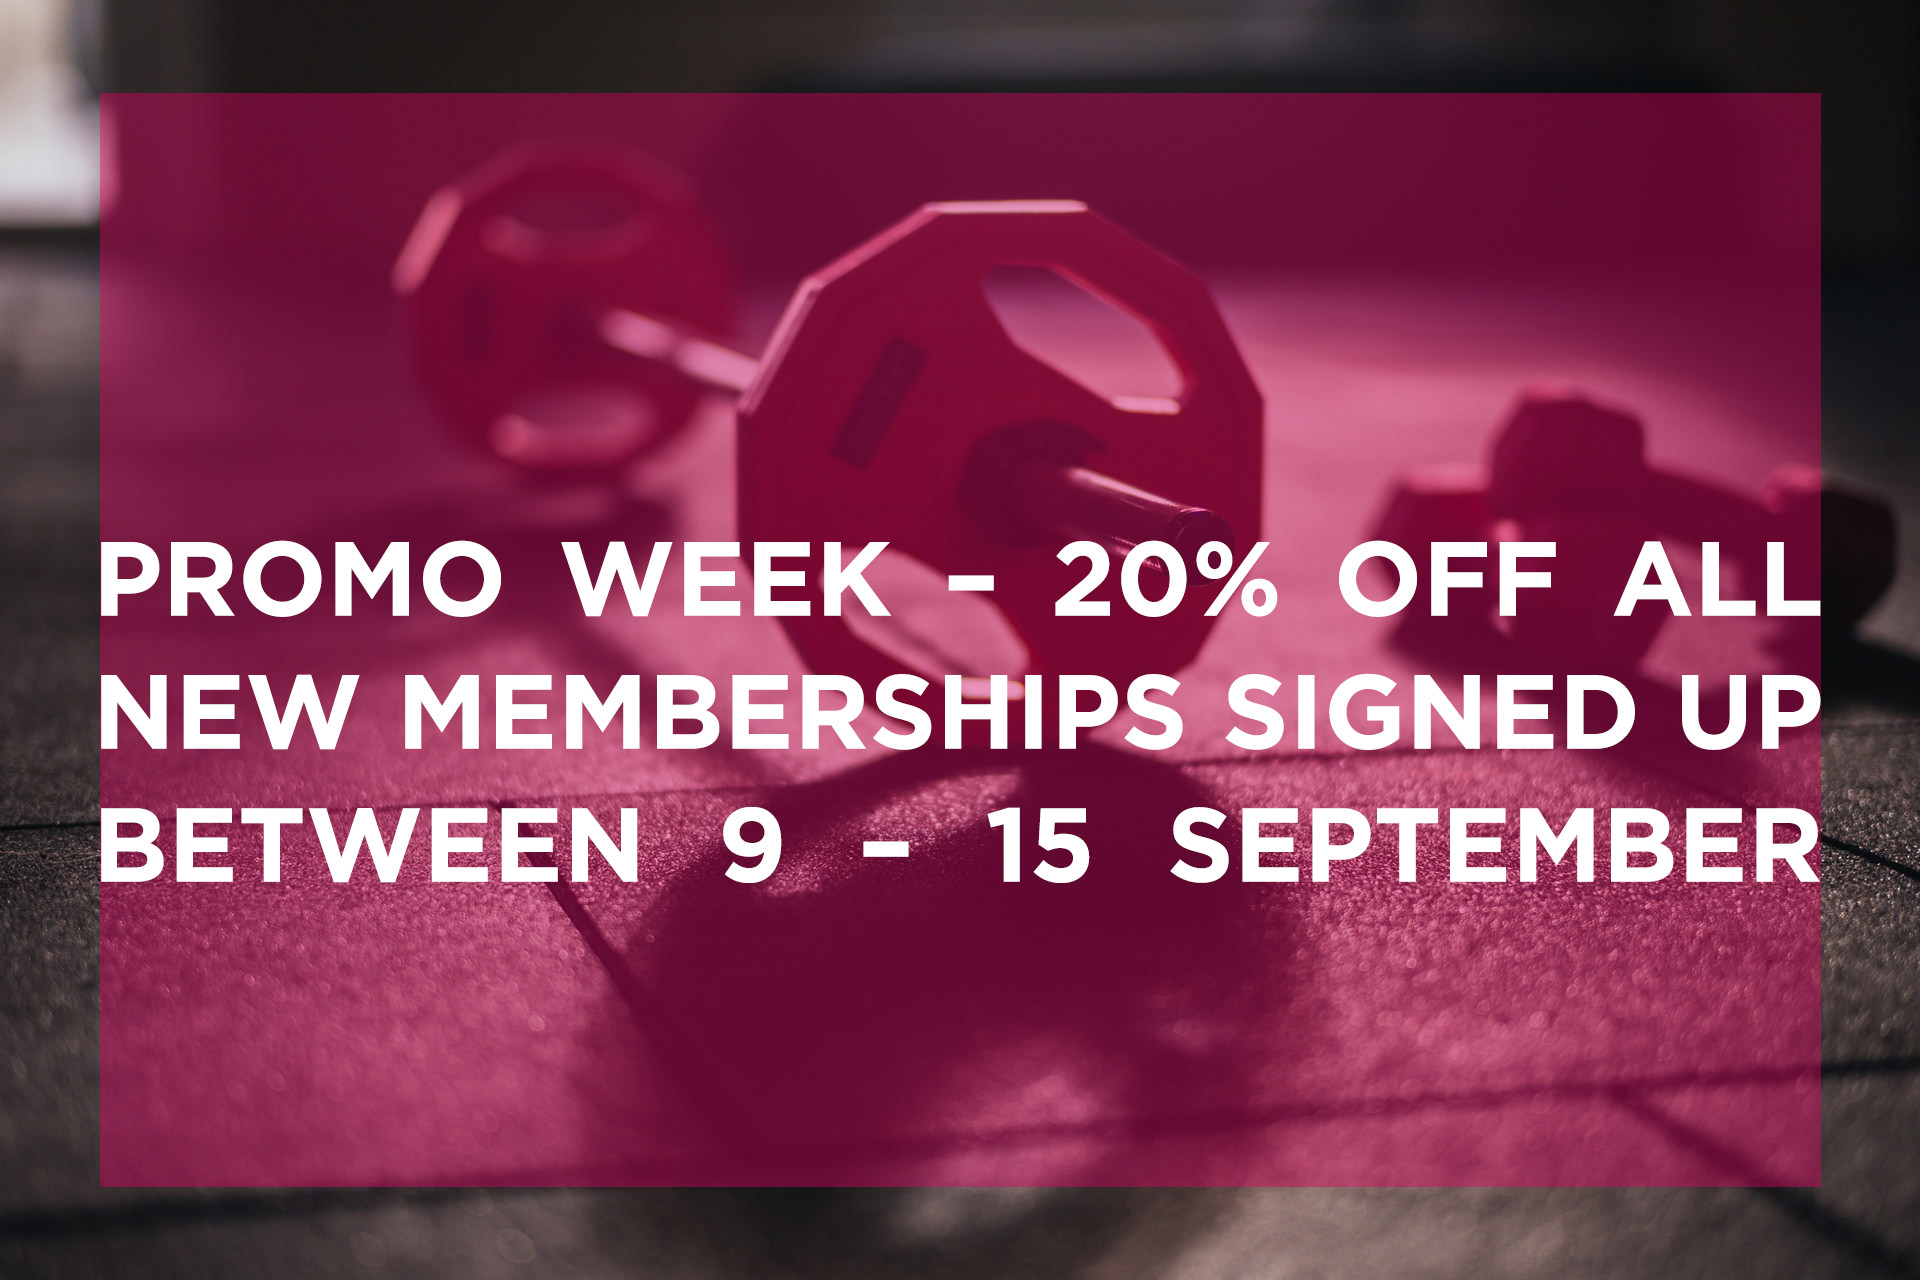 Promo Week – 20% off all new memberships signed up between 9 – 15 September